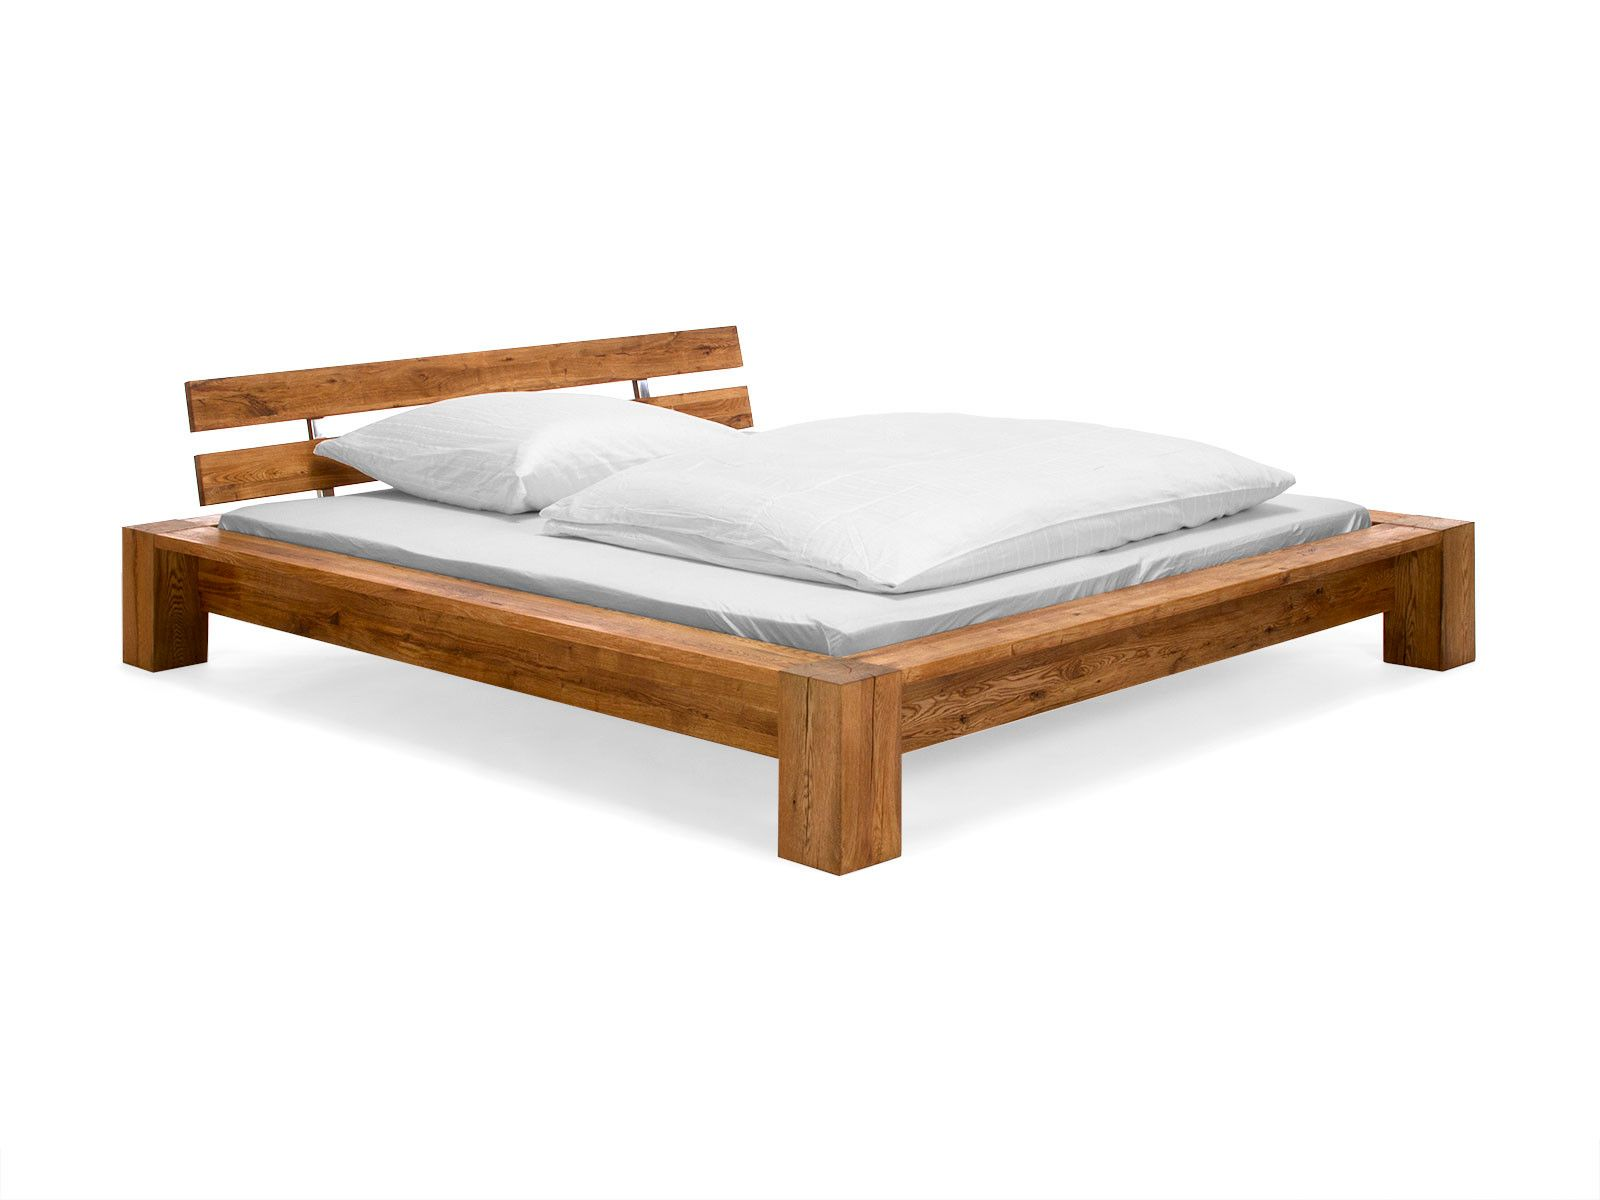 Bett 140x200 Massivholz Bett Zamora 140x200 Eiche Geoelt Bed Bed Home Decor Und Furniture